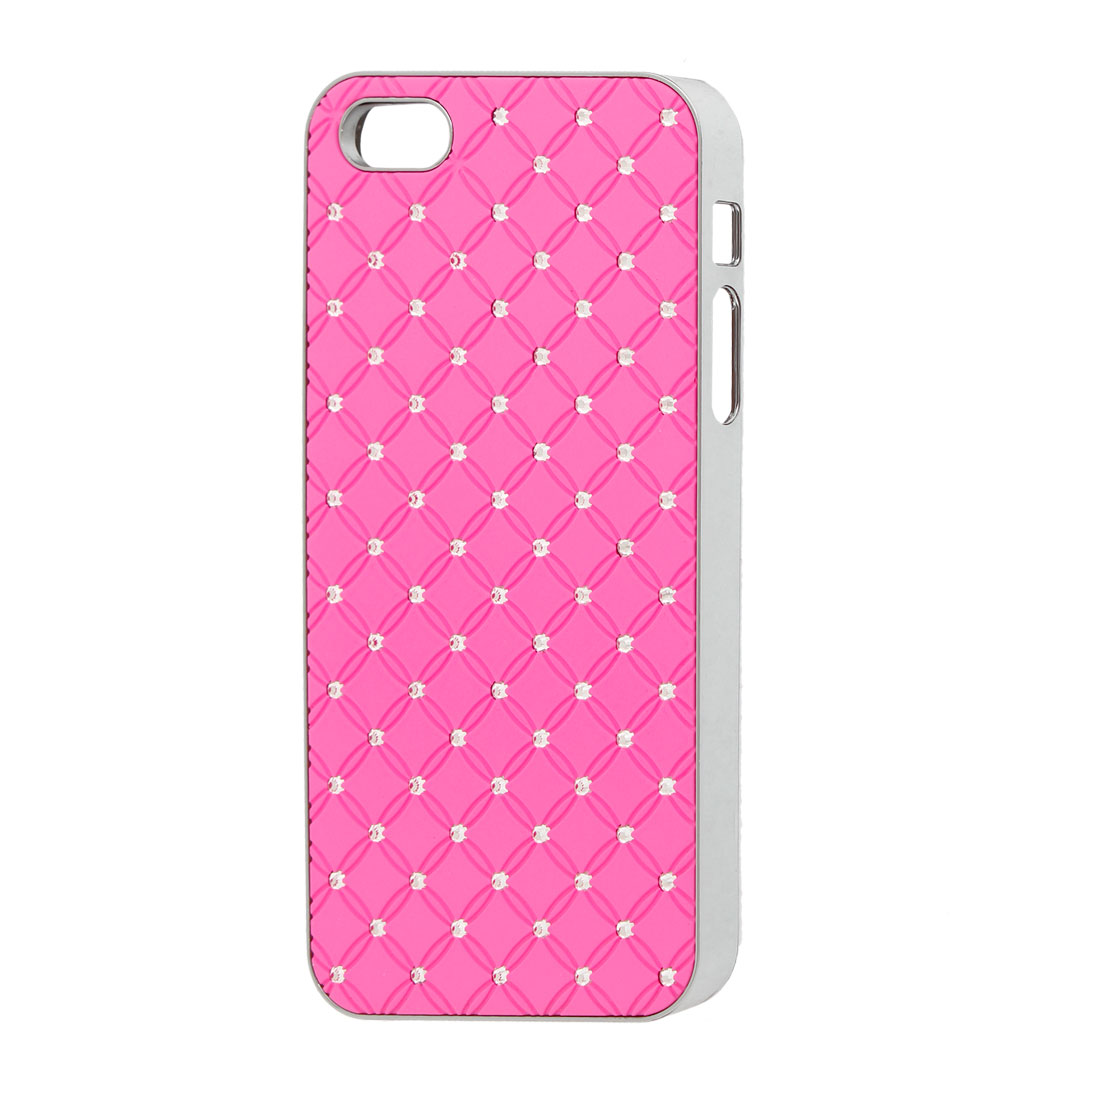 Sparkle Rhinestone Decor Grid Hard Back Case Cover Hot Pink for iPhone 5 5G